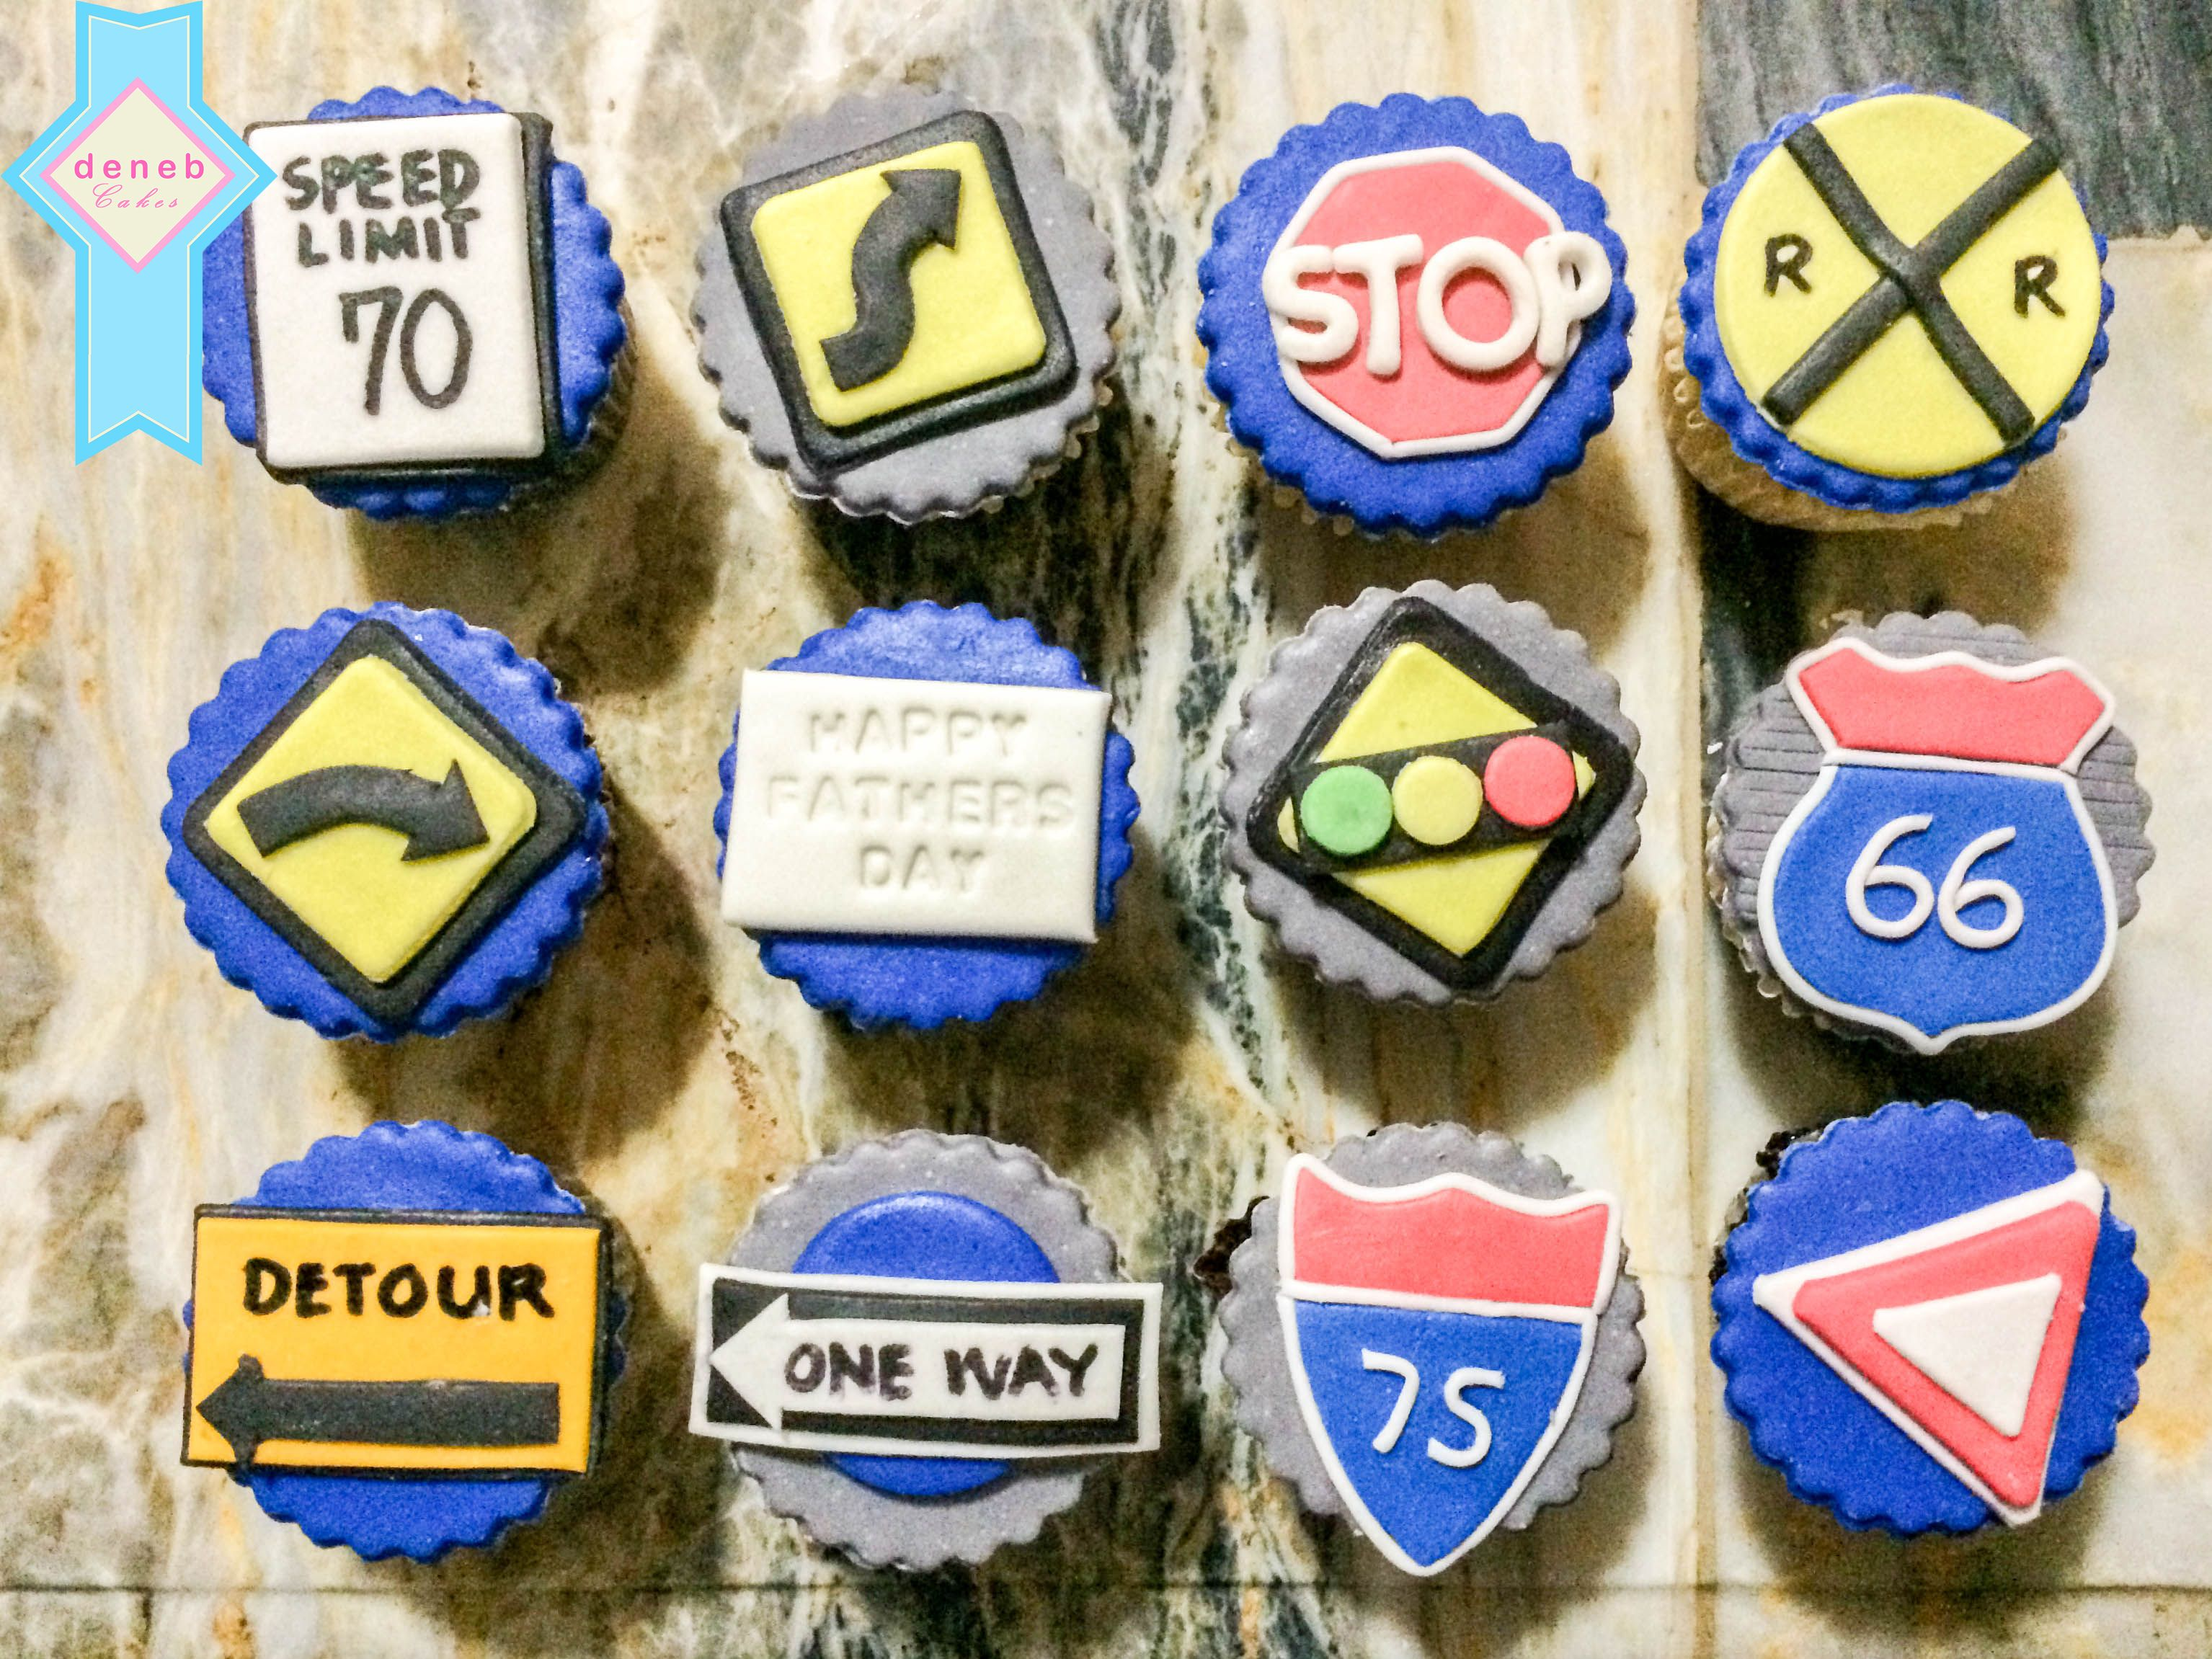 Driving signs cupcakes.